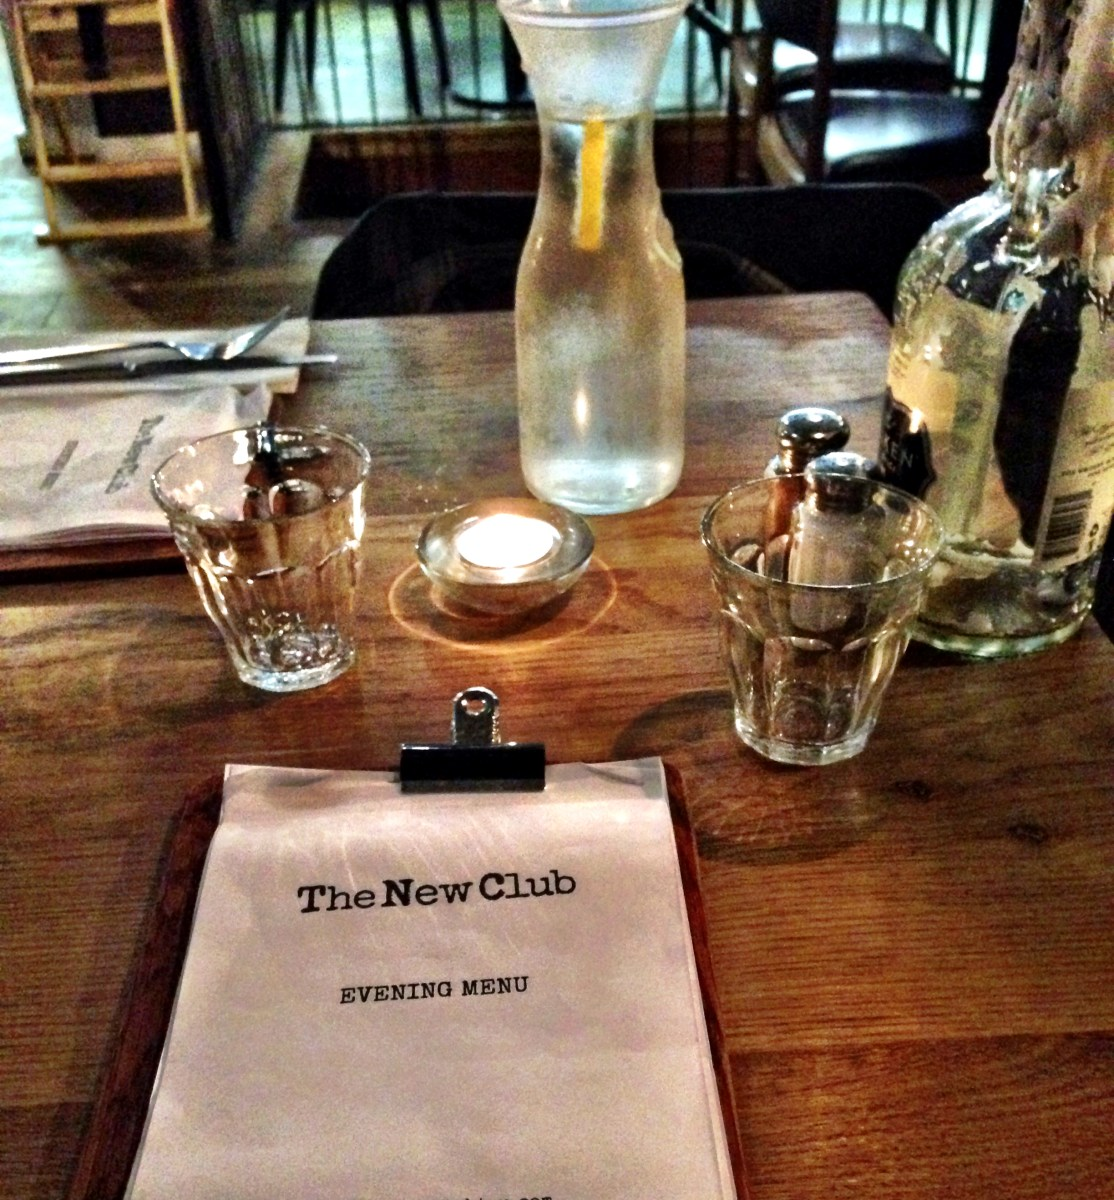 New York on Sea | The New Club, 133-134 Kings Road, Brighton, BN1 2HH